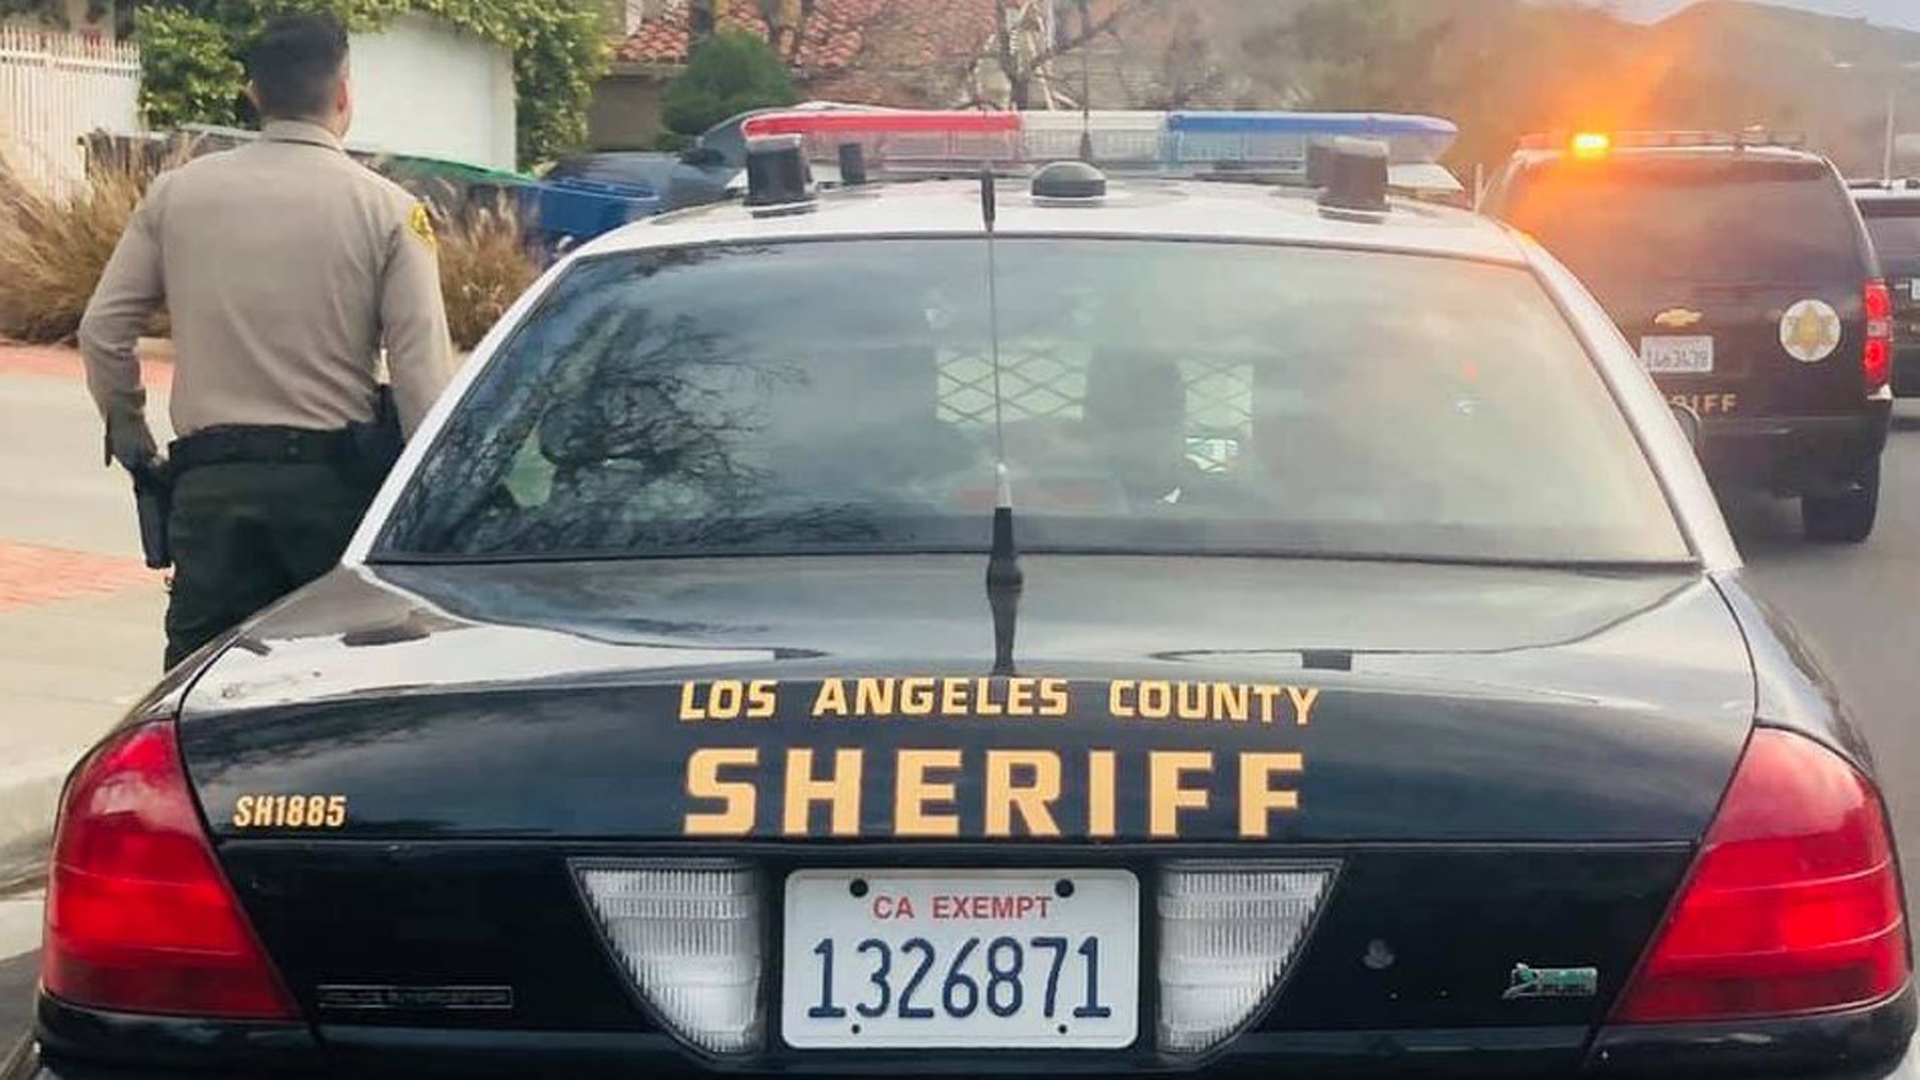 A concerned Saugus resident and deputies rescued a 90-year-old woman who fell inside her Saugus home on Jan. 1, 2019. (Credit: Los Angeles County Sheriff's Department)